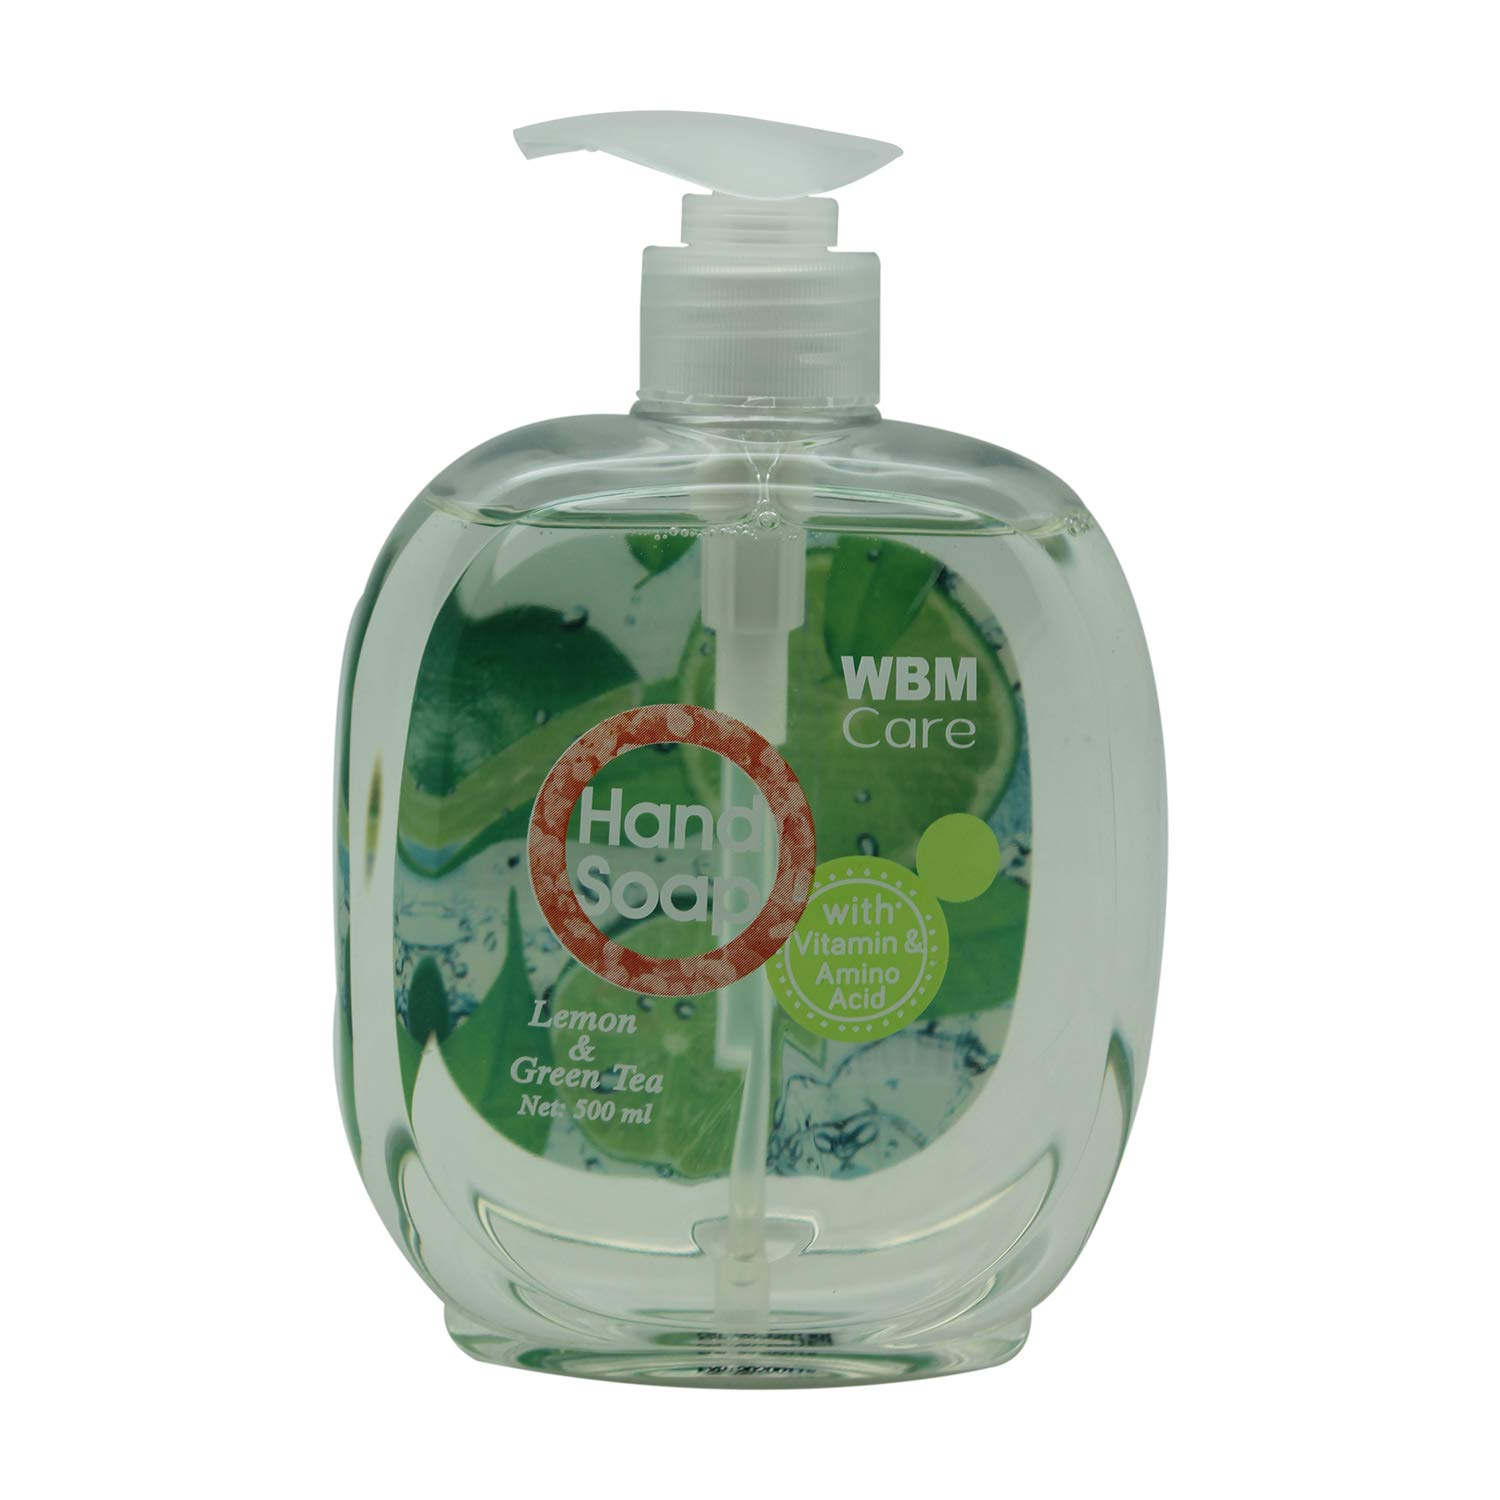 WBM Care Natural Liquid Hand Soap with Lemon & Green Tea,Cleanse and Moisturize Your Hands - 16.9 Ounce